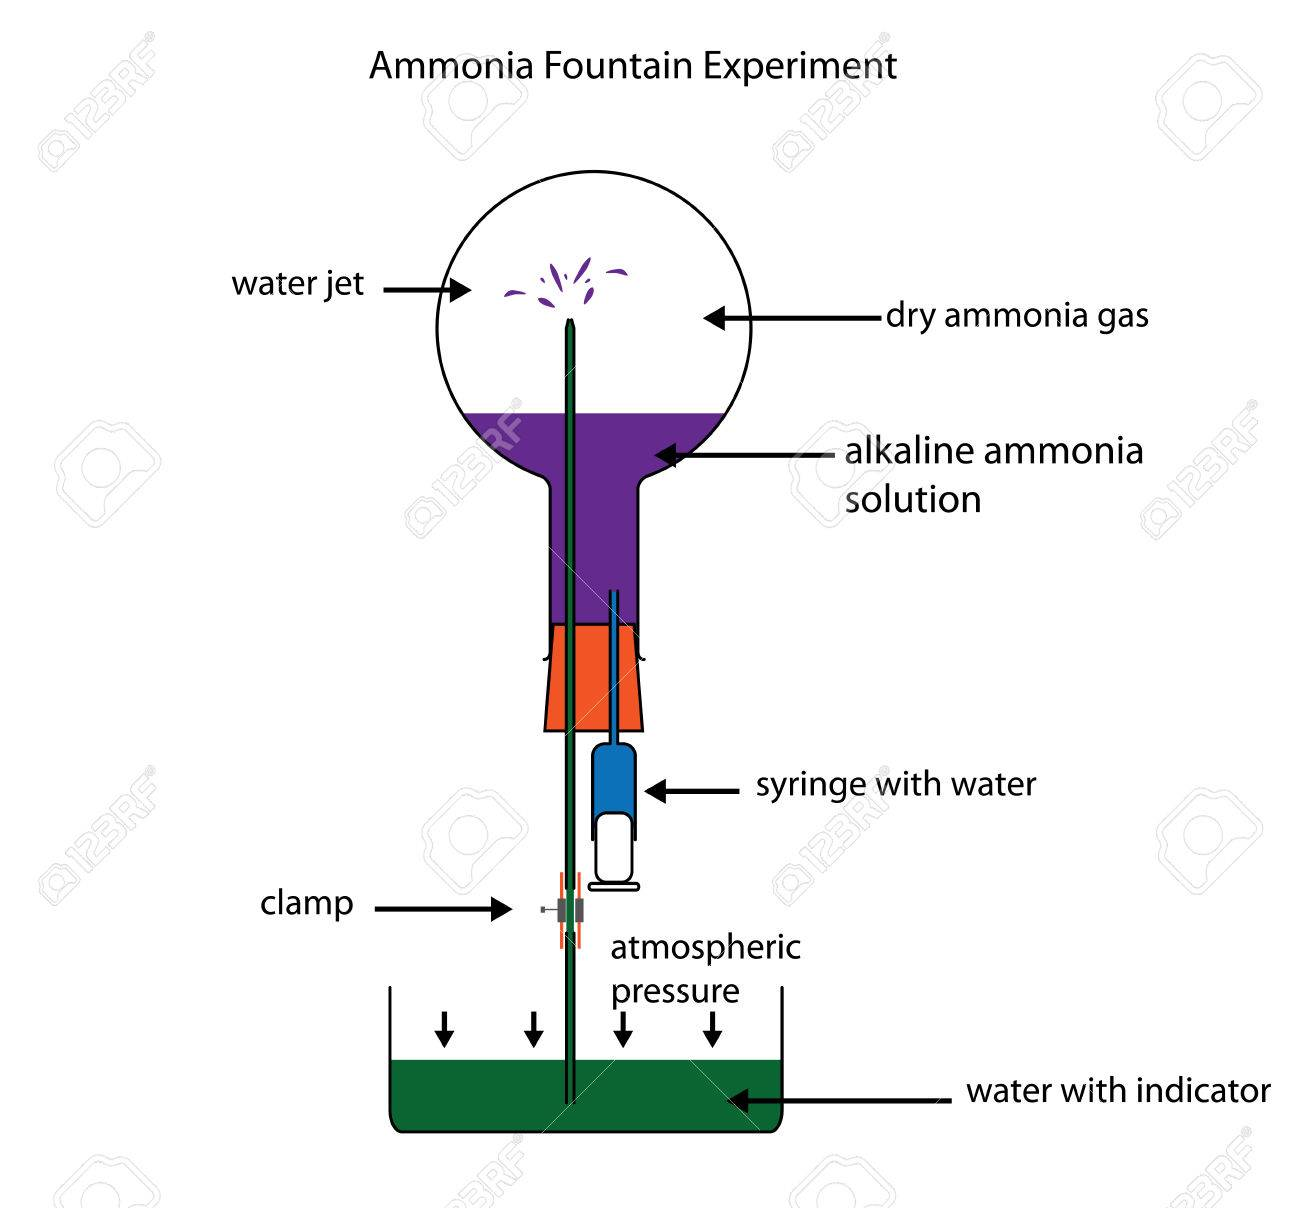 Ammonia Fountain Experiment To Demonstrate The Solubility Of ...